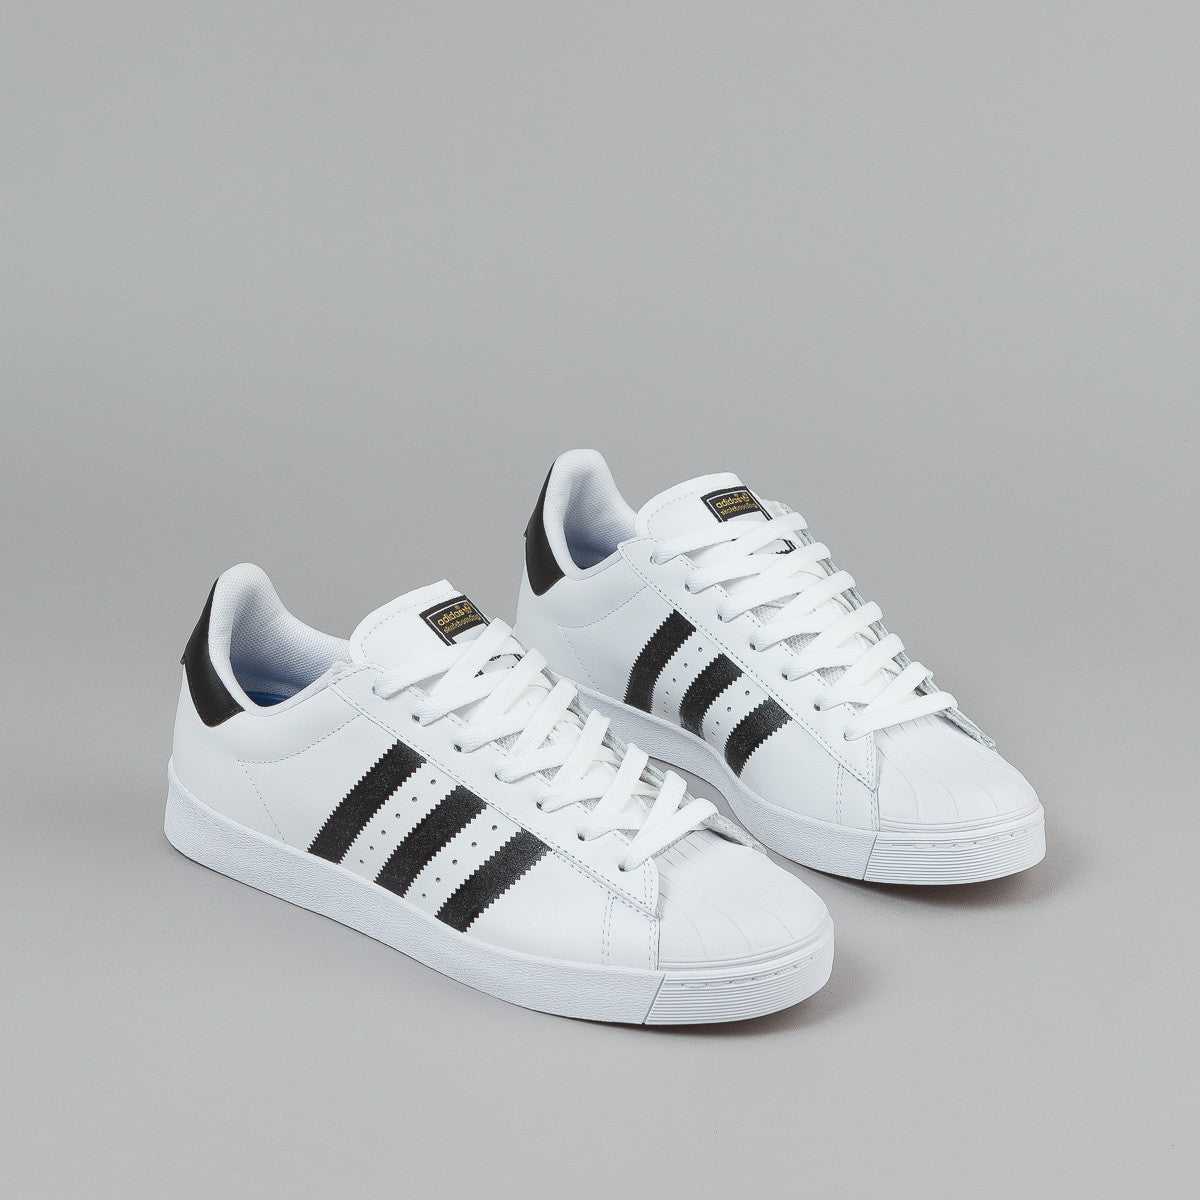 adidas Superstar 80s Hype DC